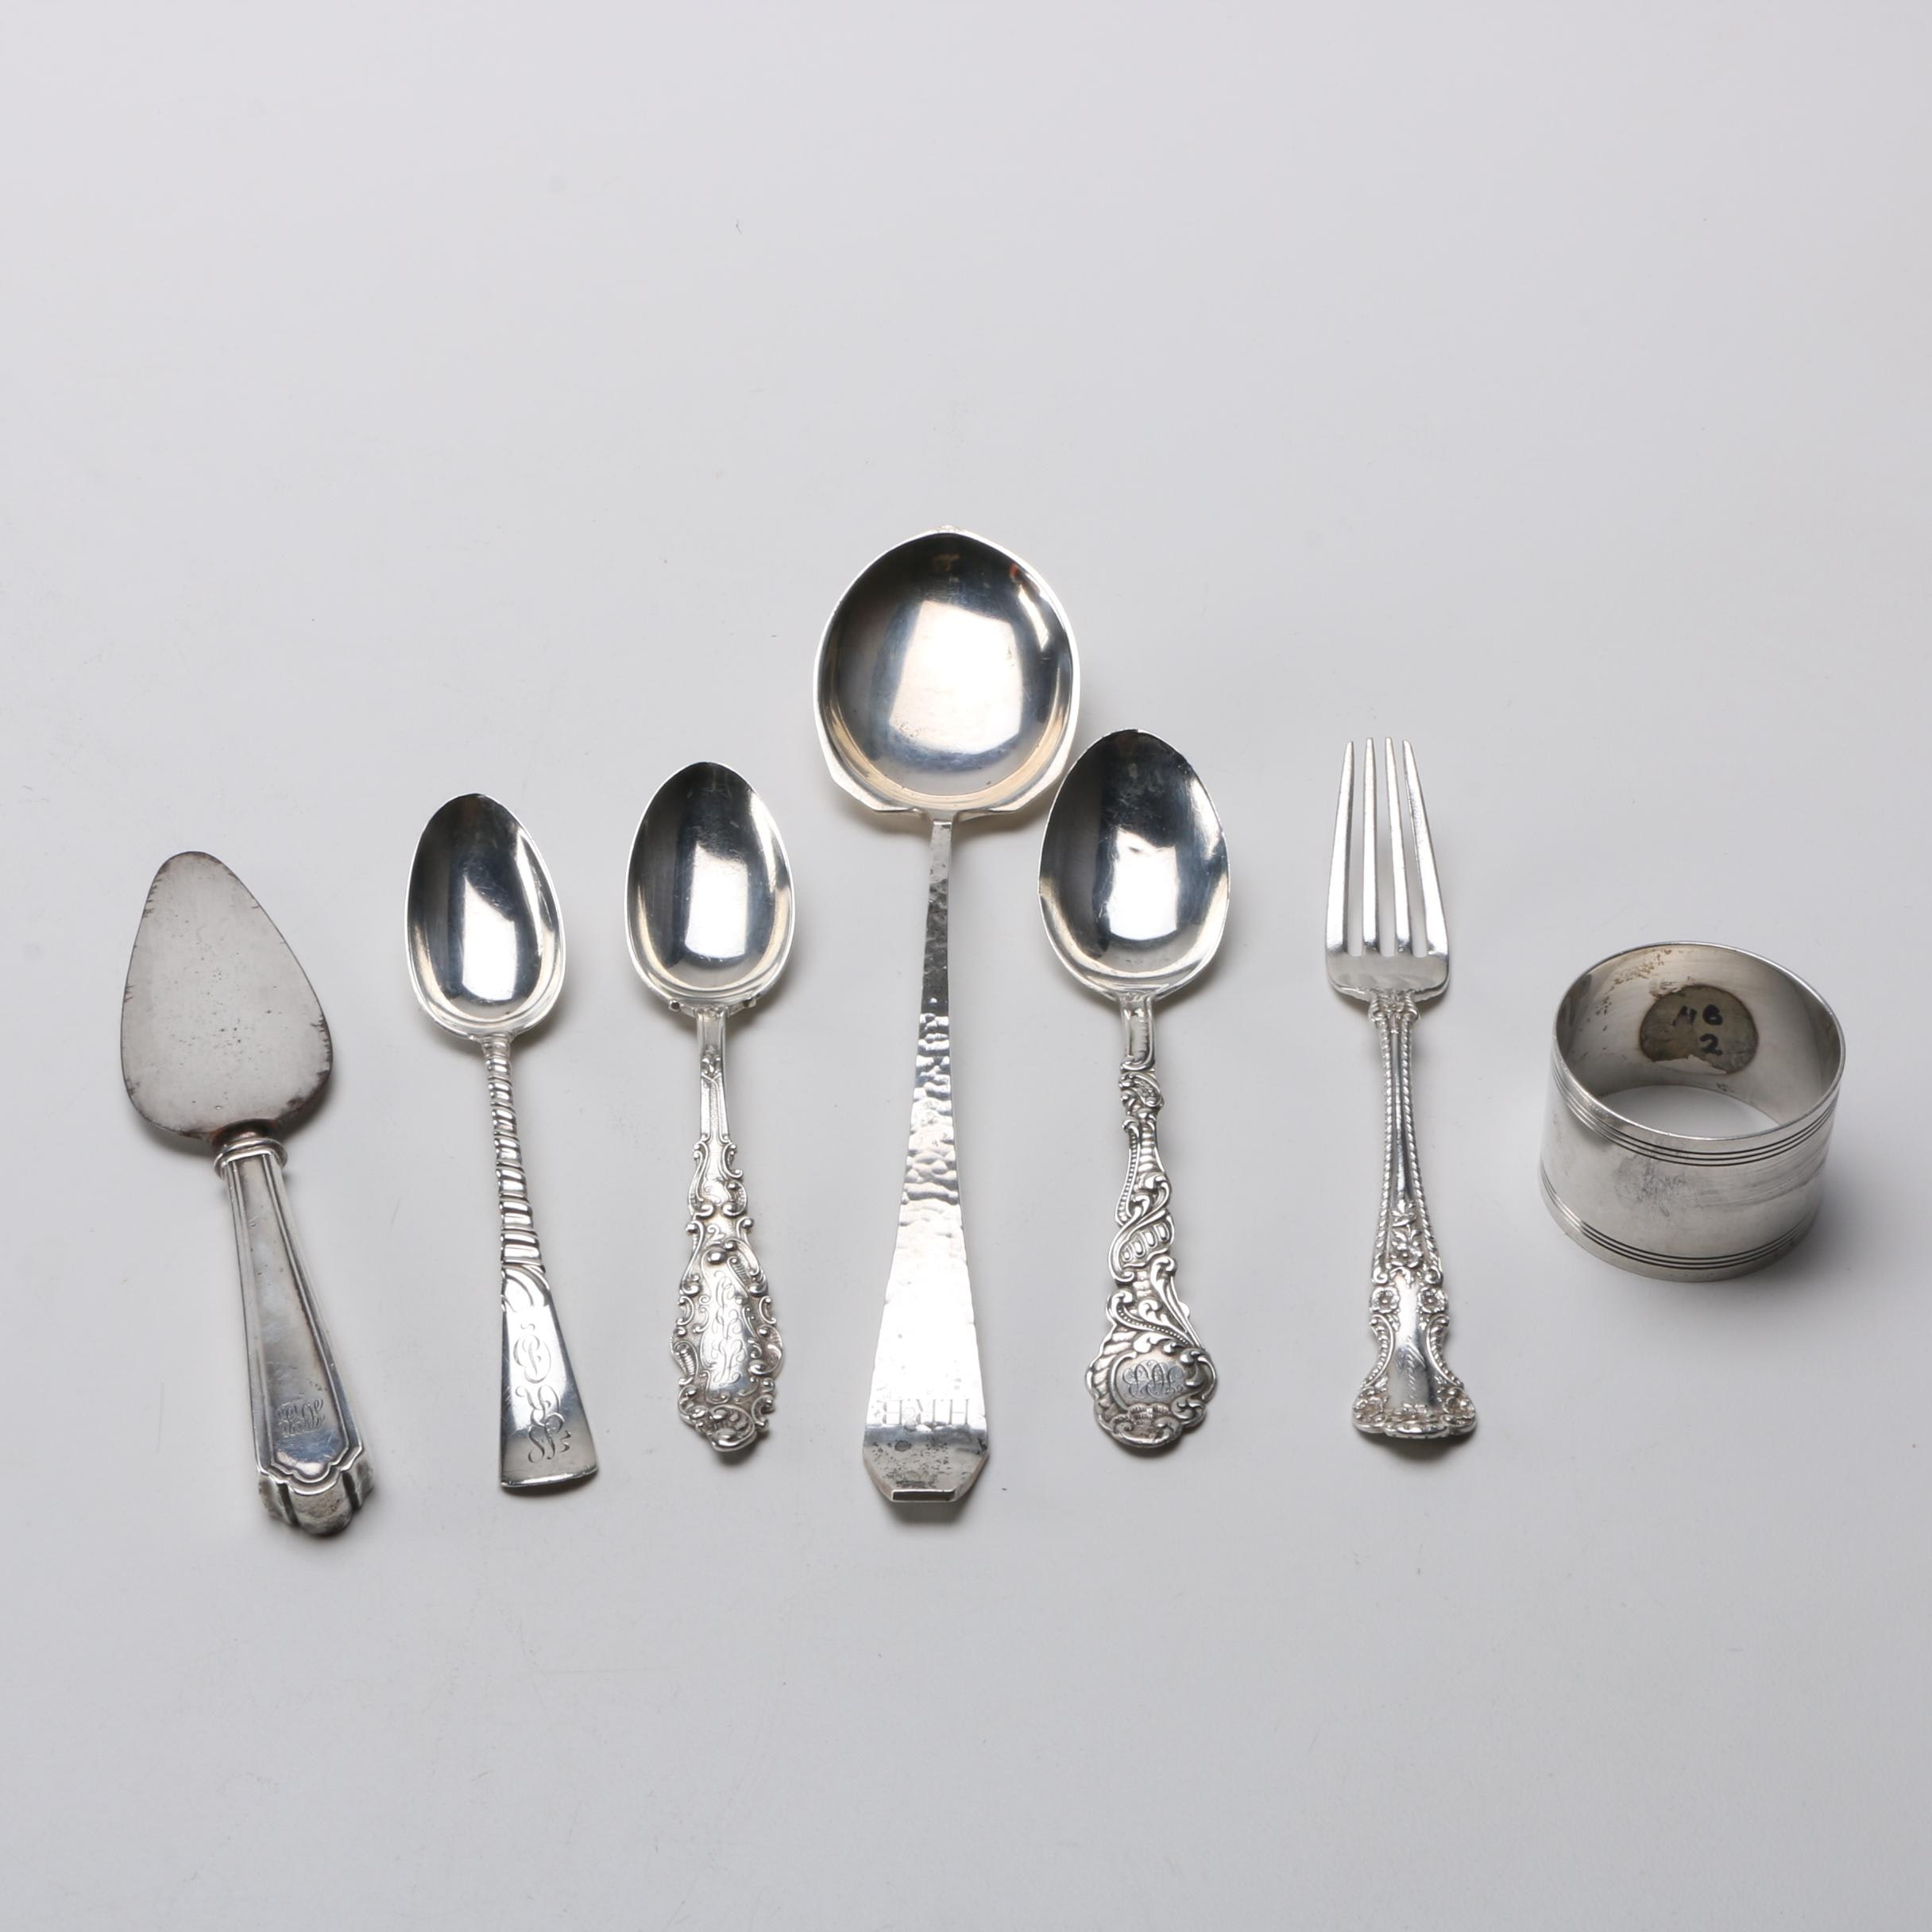 Towle and Gorham Sterling Silver Flatware